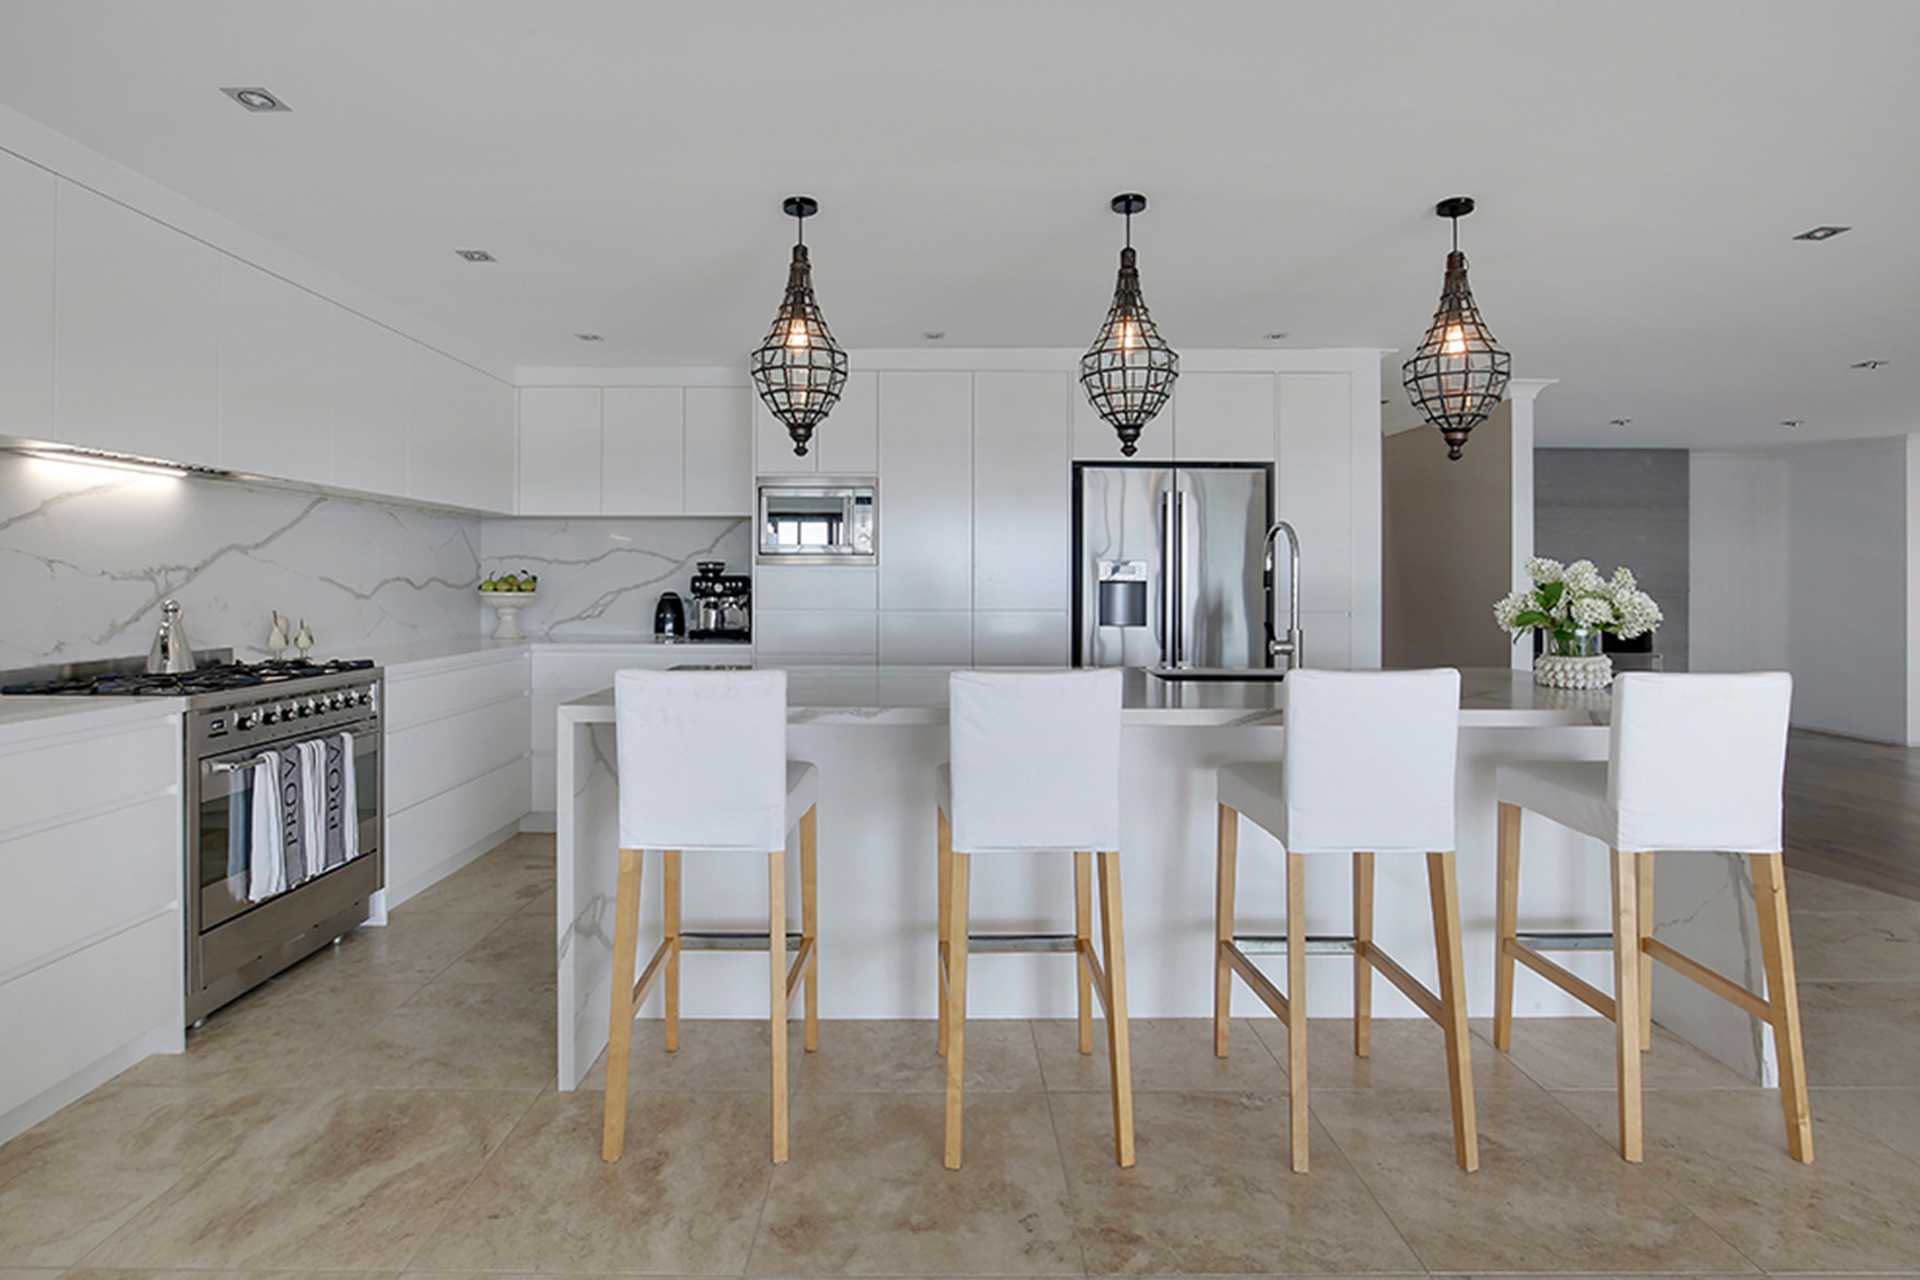 All You Need To Know About The Trend In Northern Beaches Joinery And Cabinetry